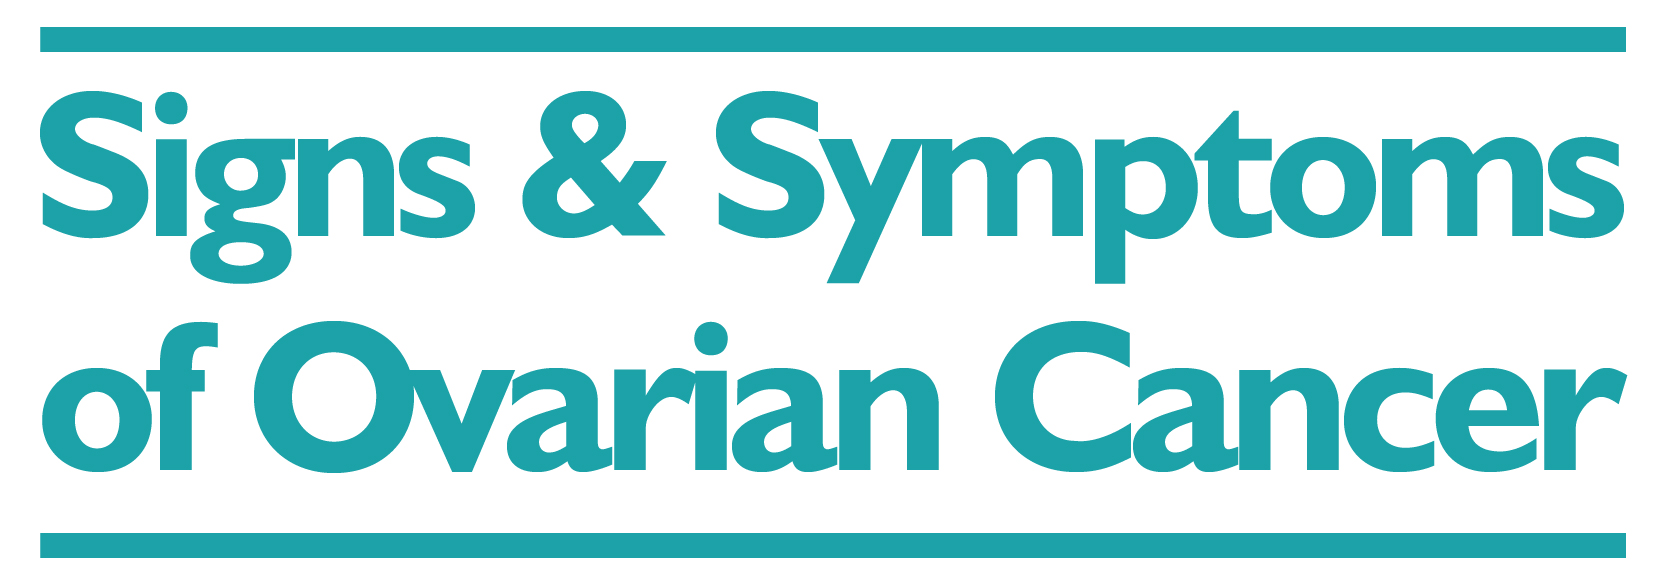 Signs and Symptoms - Ovarian Cancer - A Rack Card